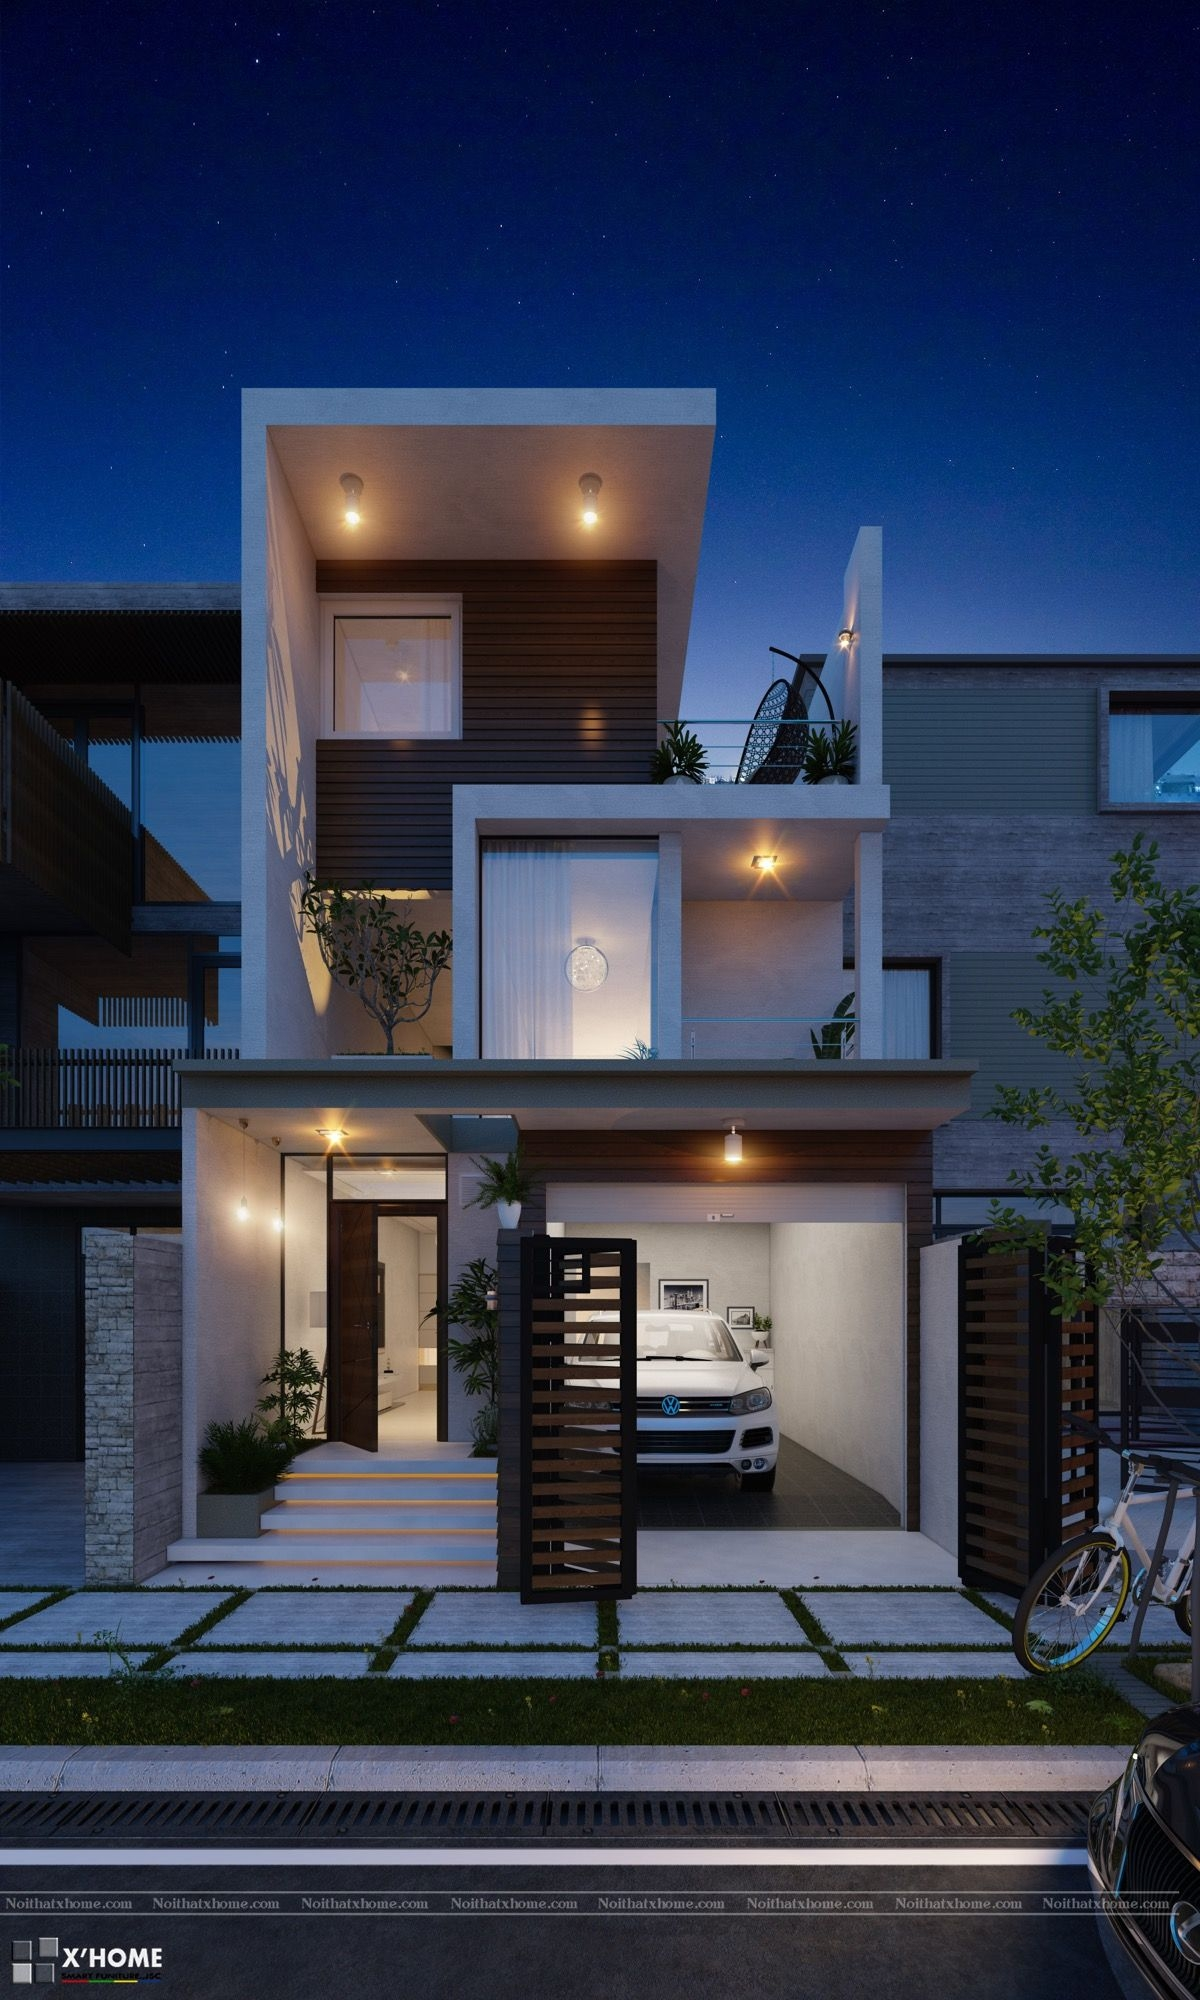 0ede71c6cf54f7407f9cbcceadc on Modern House Designs Pictures Gallery id=1005766